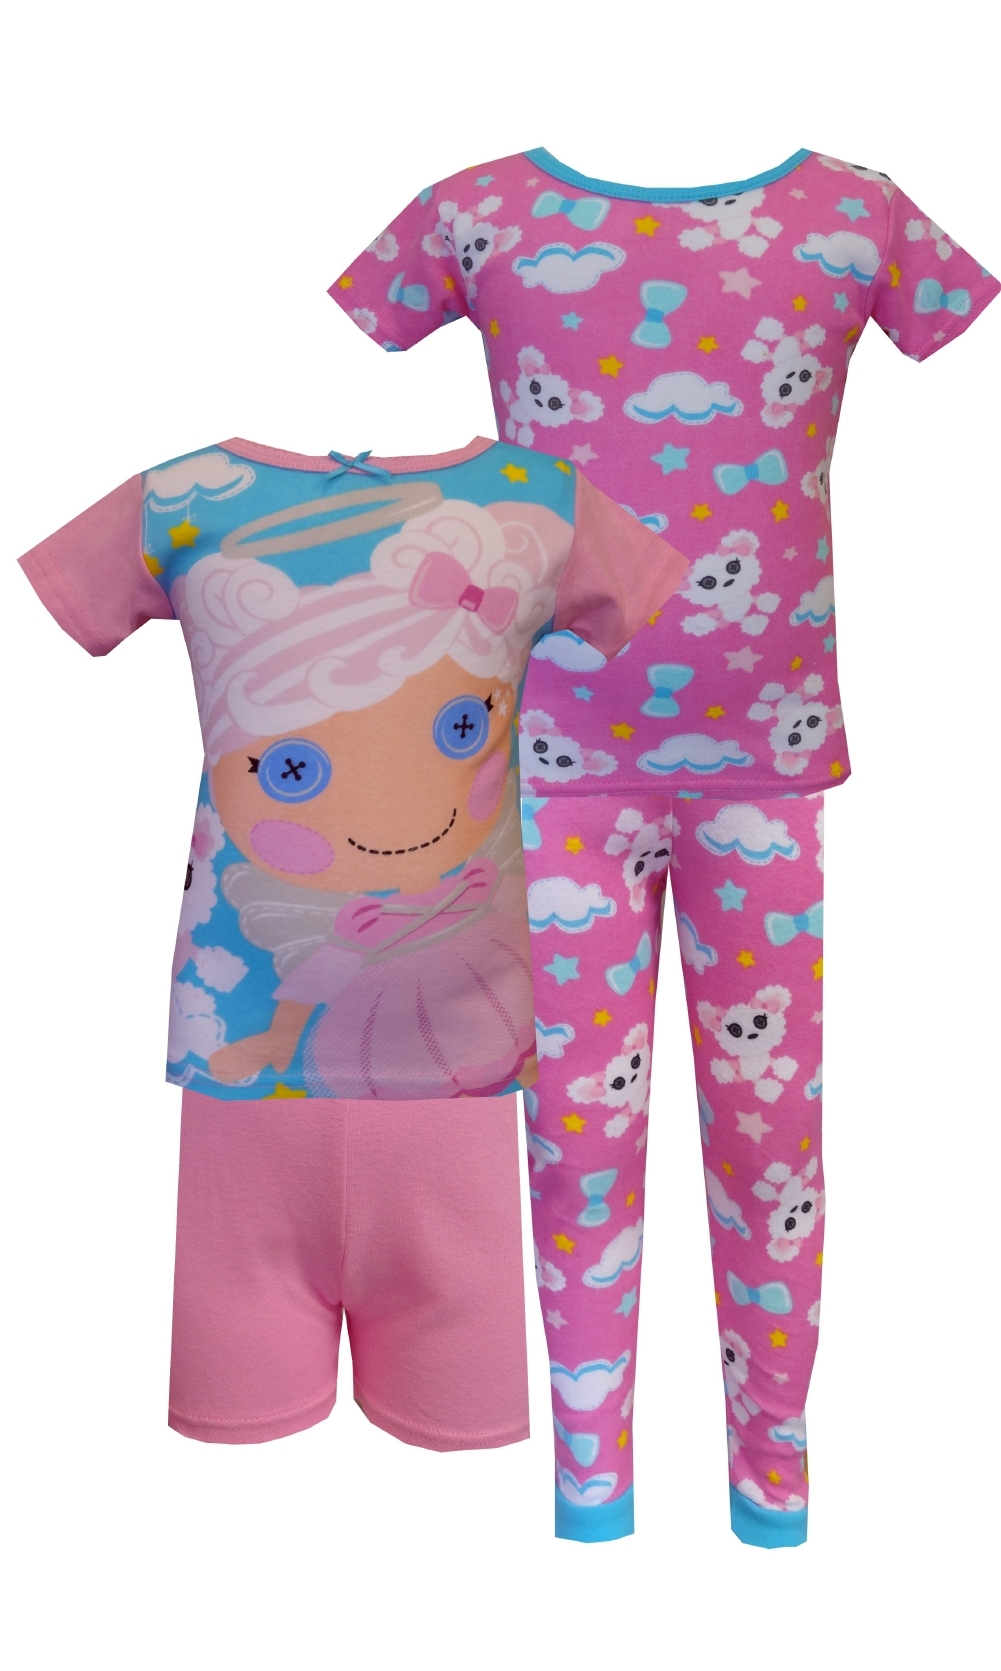 Lalaloopsy Cloud E. Sky & Puffy Poodle 4 Piece PJ Set for girls